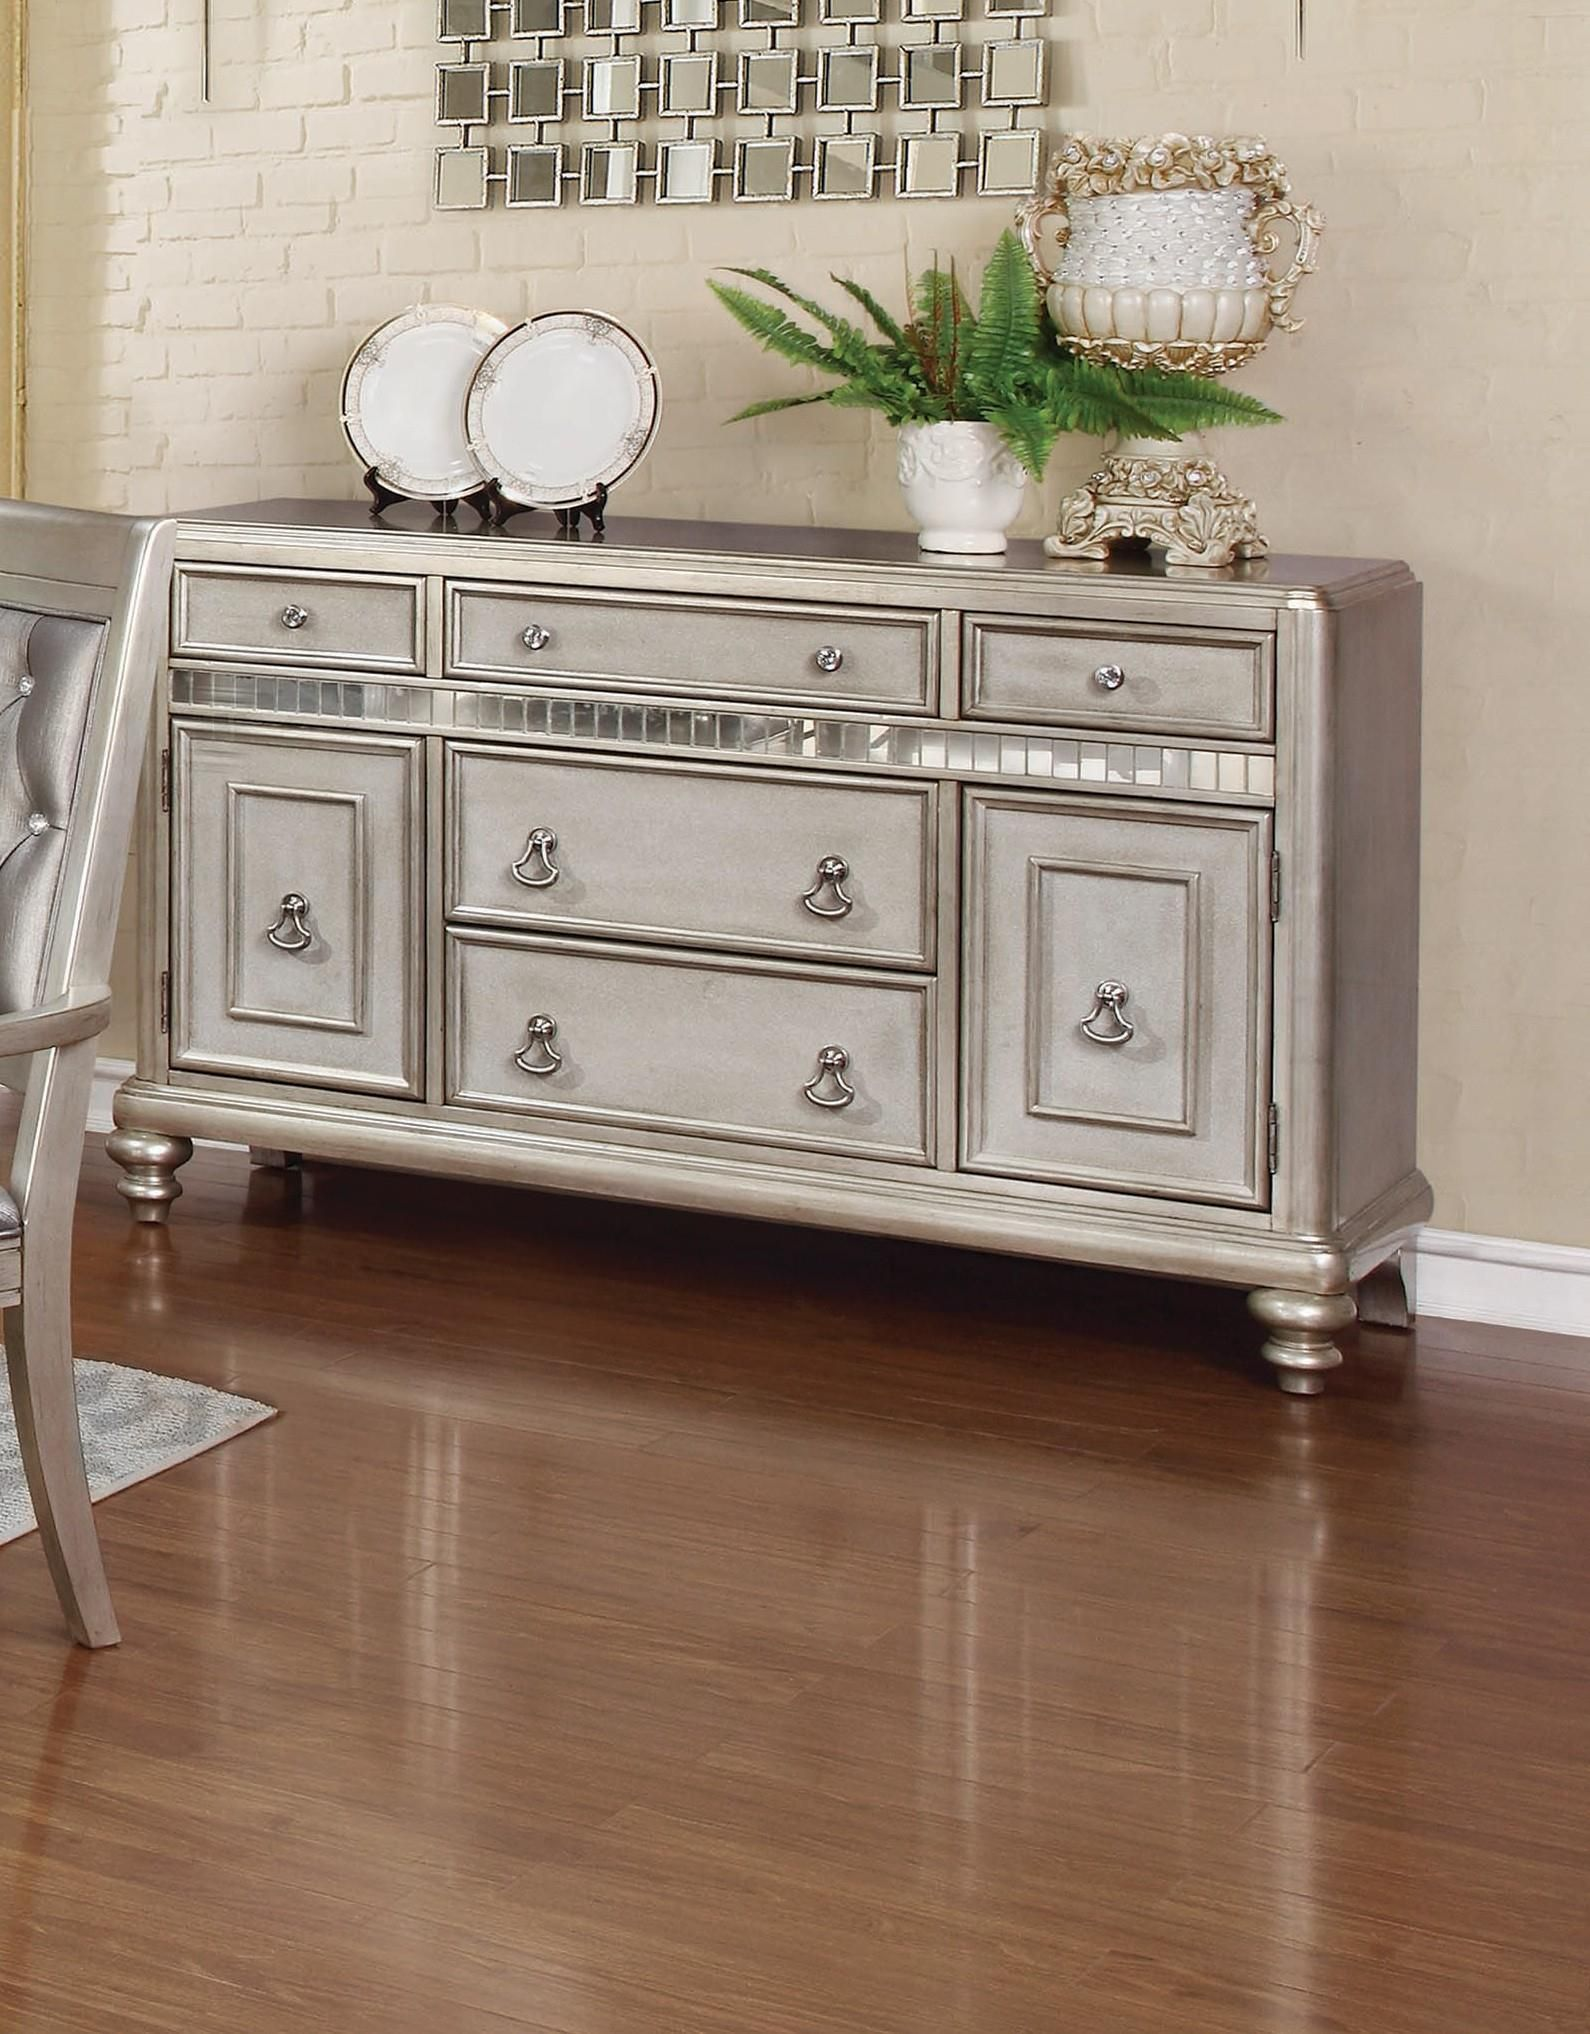 Bling Platinum Finish Server $599 Sale Contact Us For Info